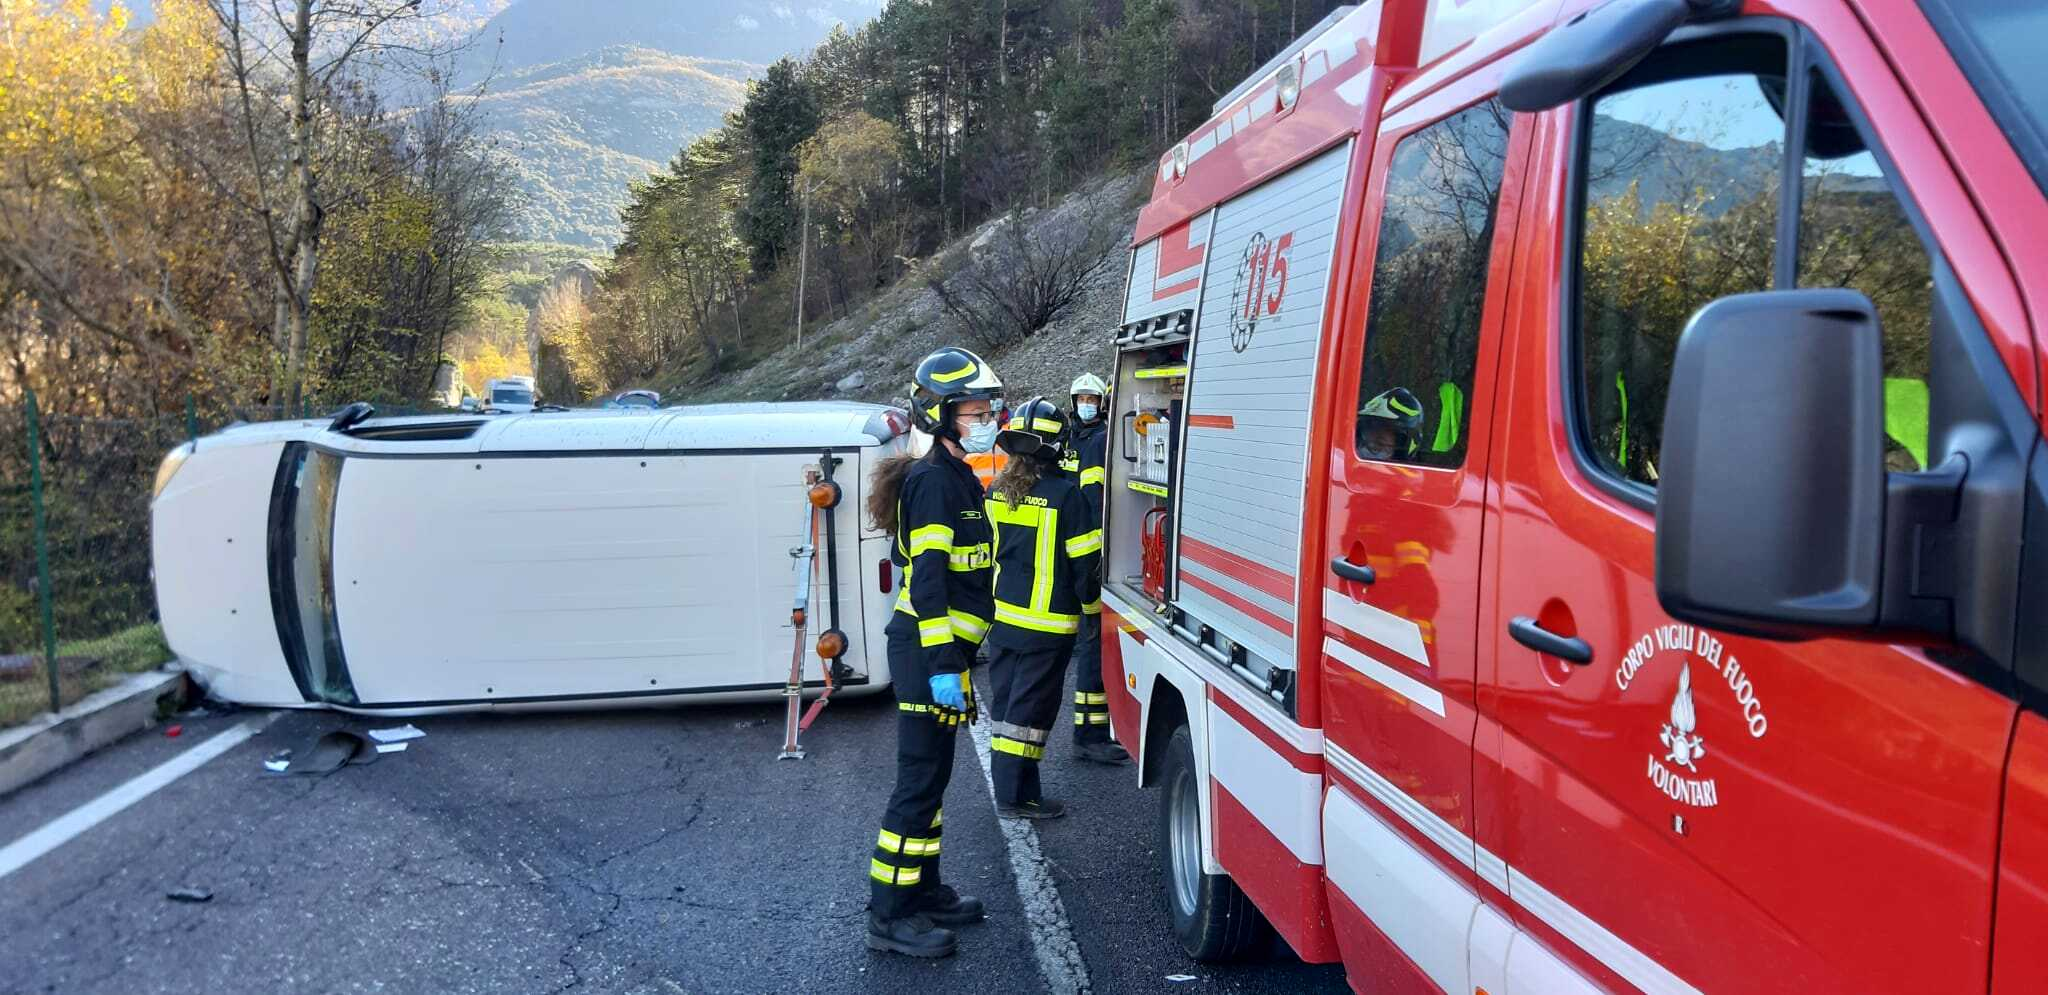 Dro incidente ss45bis 17novembre 2020 3-2